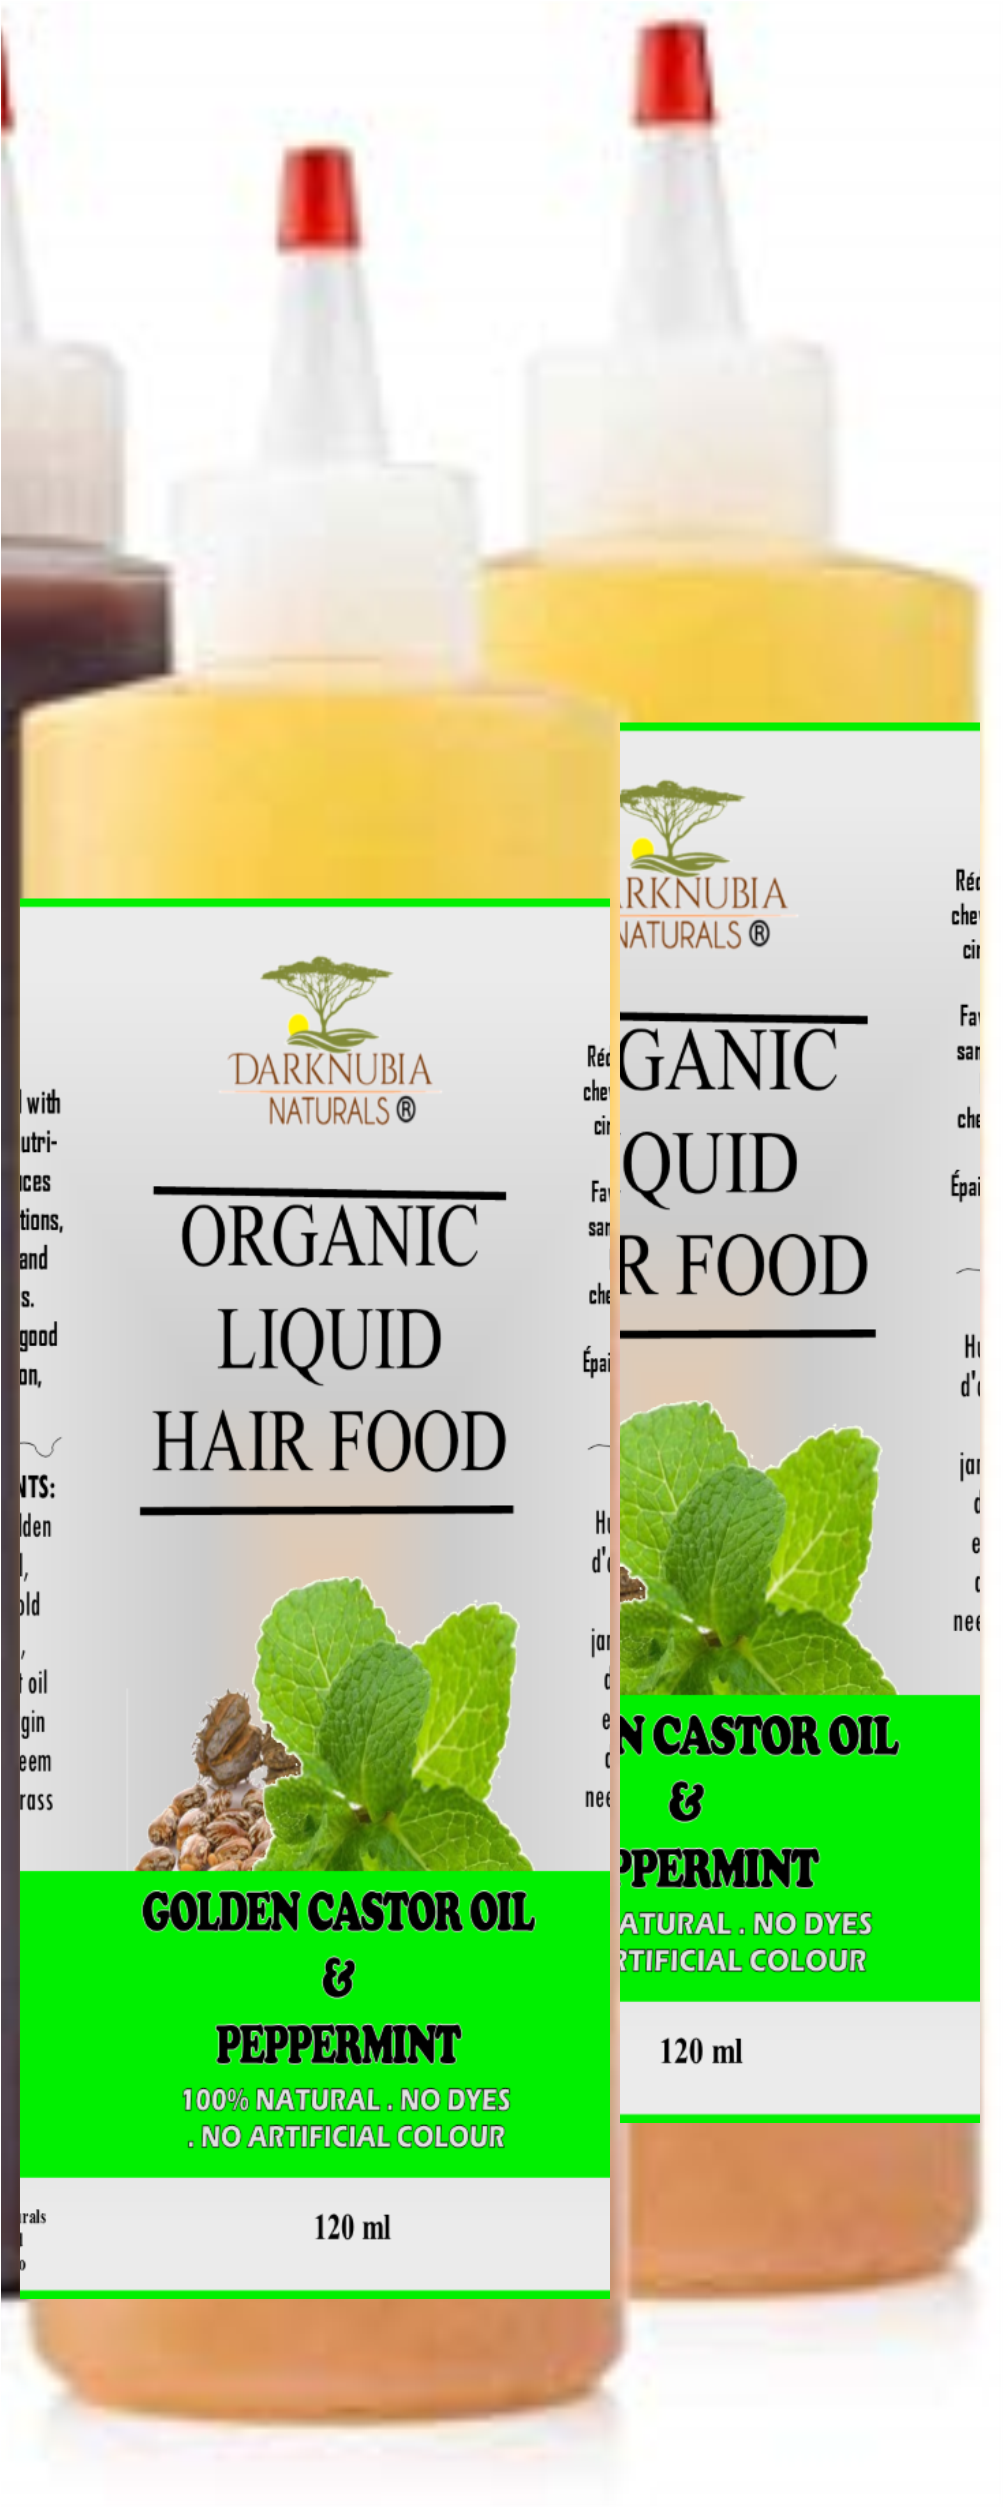 GOLDEN CASTOR OIL & PEPPERMINT